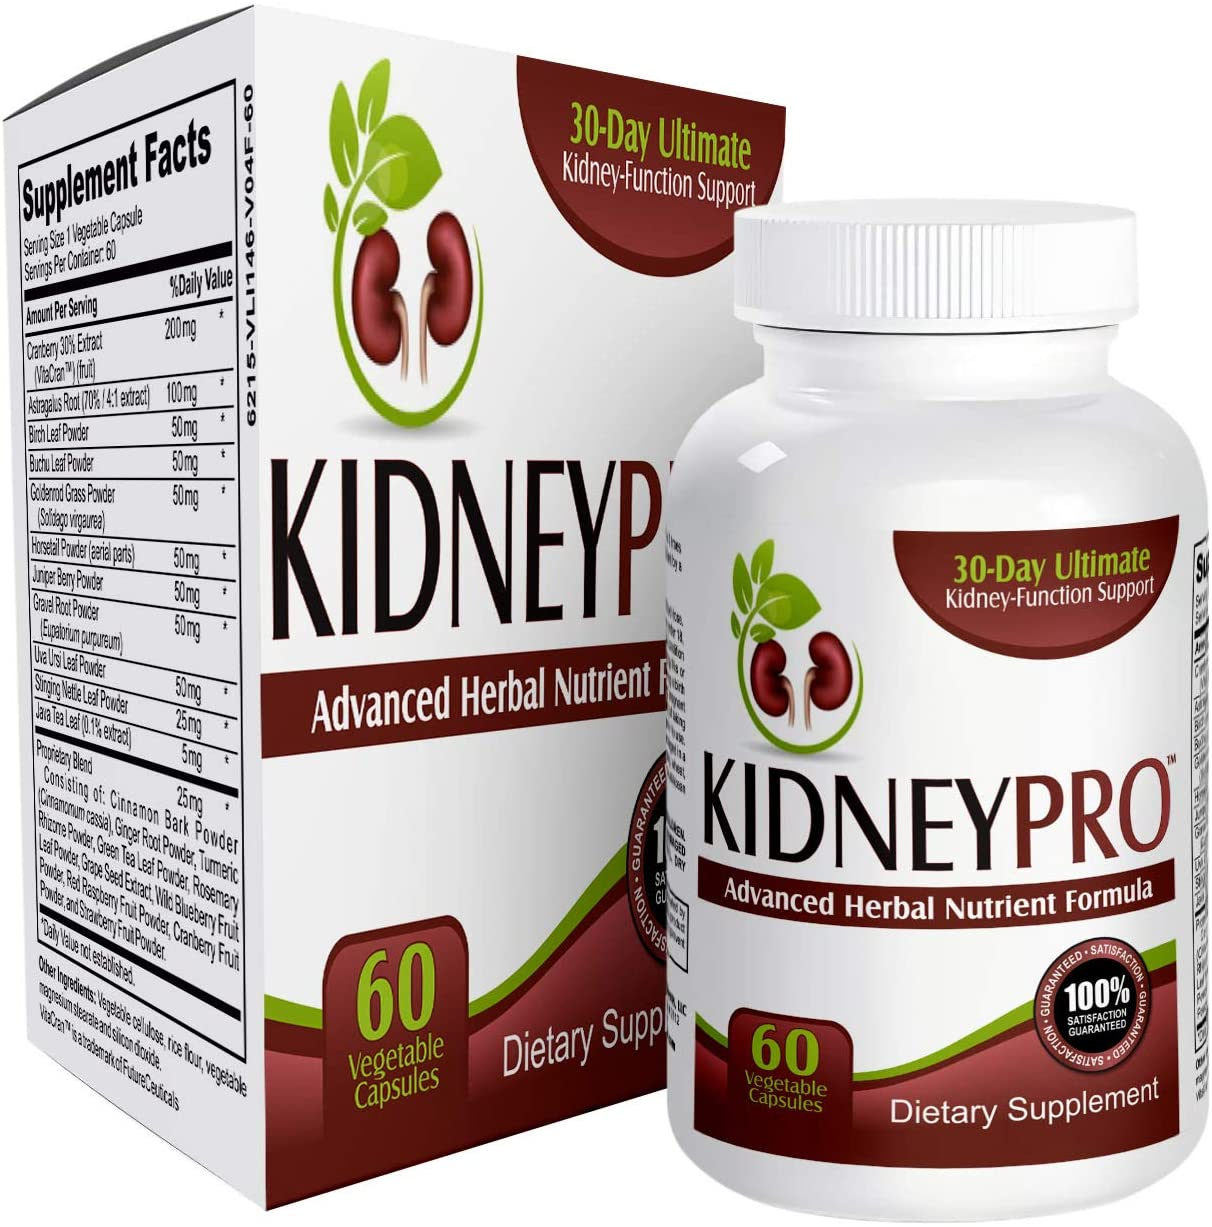 Kidney-Pro All-in-1 with 21 Kidney Support Supplements – Kidney Health Supplement Pills – Kidney Cleanse – 60 Capsules